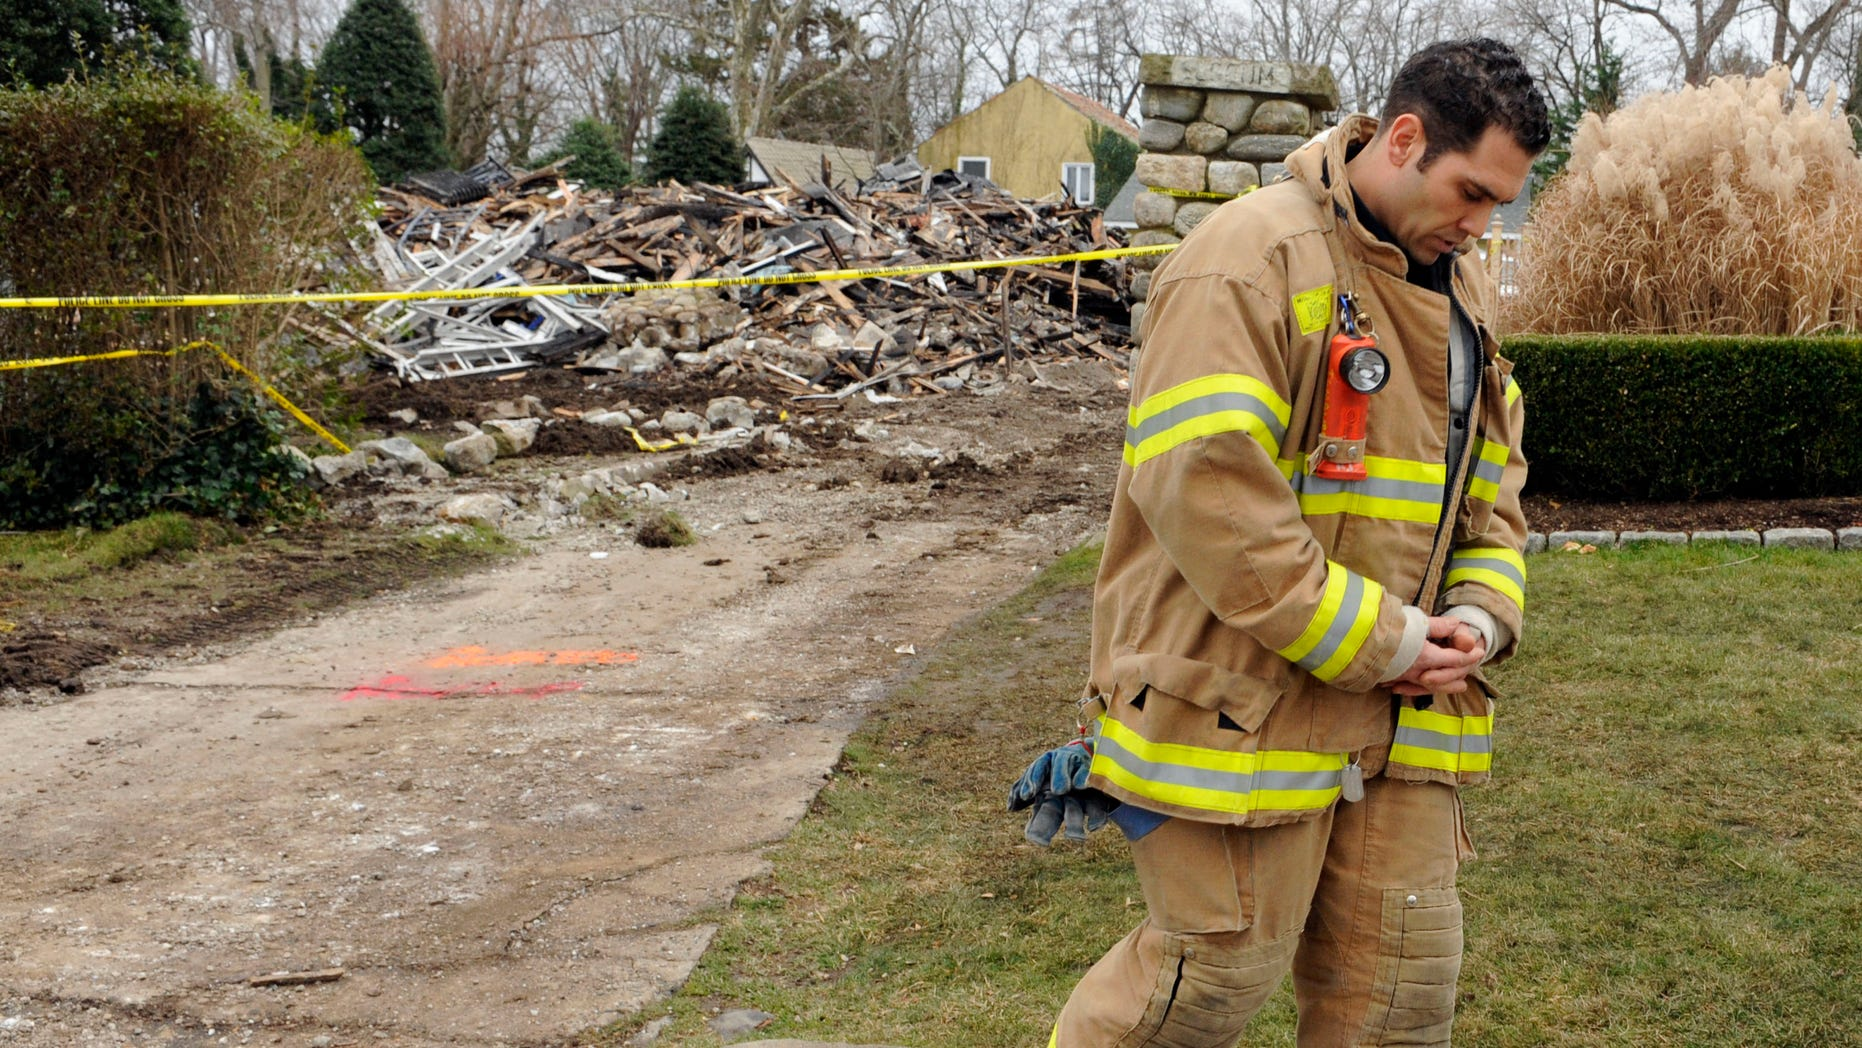 December 27: Stamford firefighter Nick Tamburro pays respect outside the home of Madonna Badger in Stamford, Connecticut. A fire at the home on Christmas morning killed Badger's three daughters and parents.